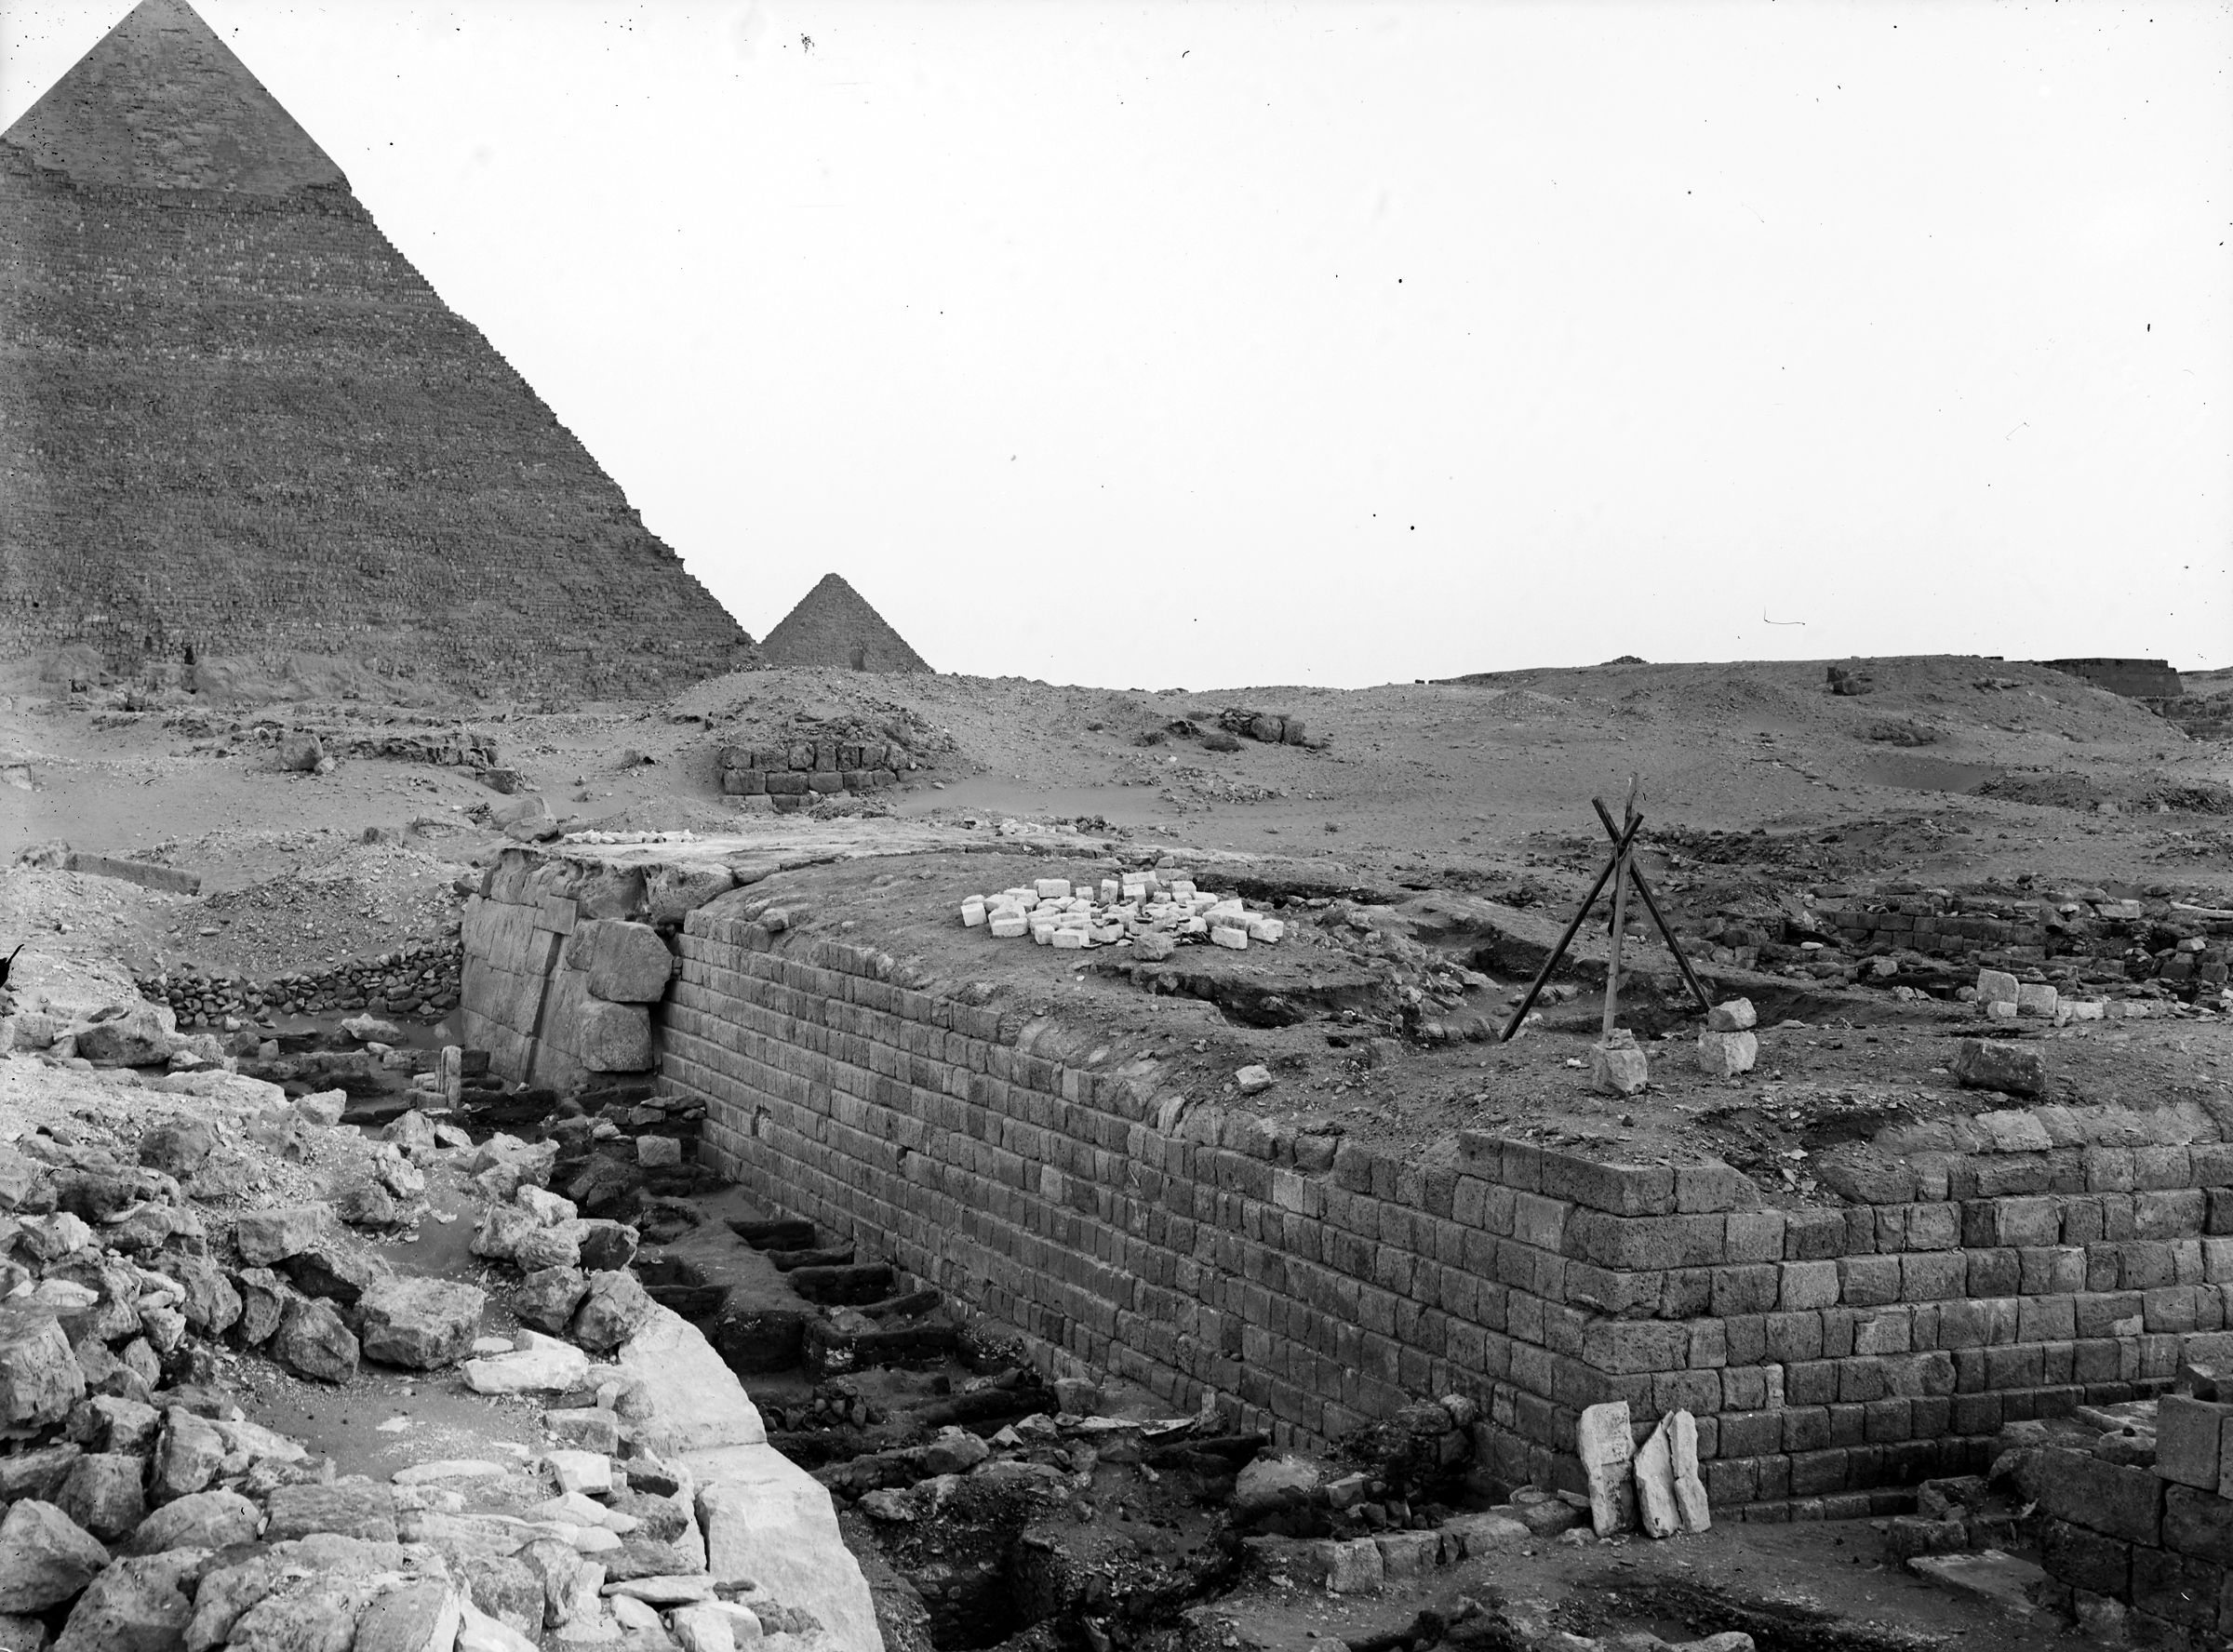 Western Cemetery: Site: Giza; View: G 2100, G 2100-I, G 2114, G 2105